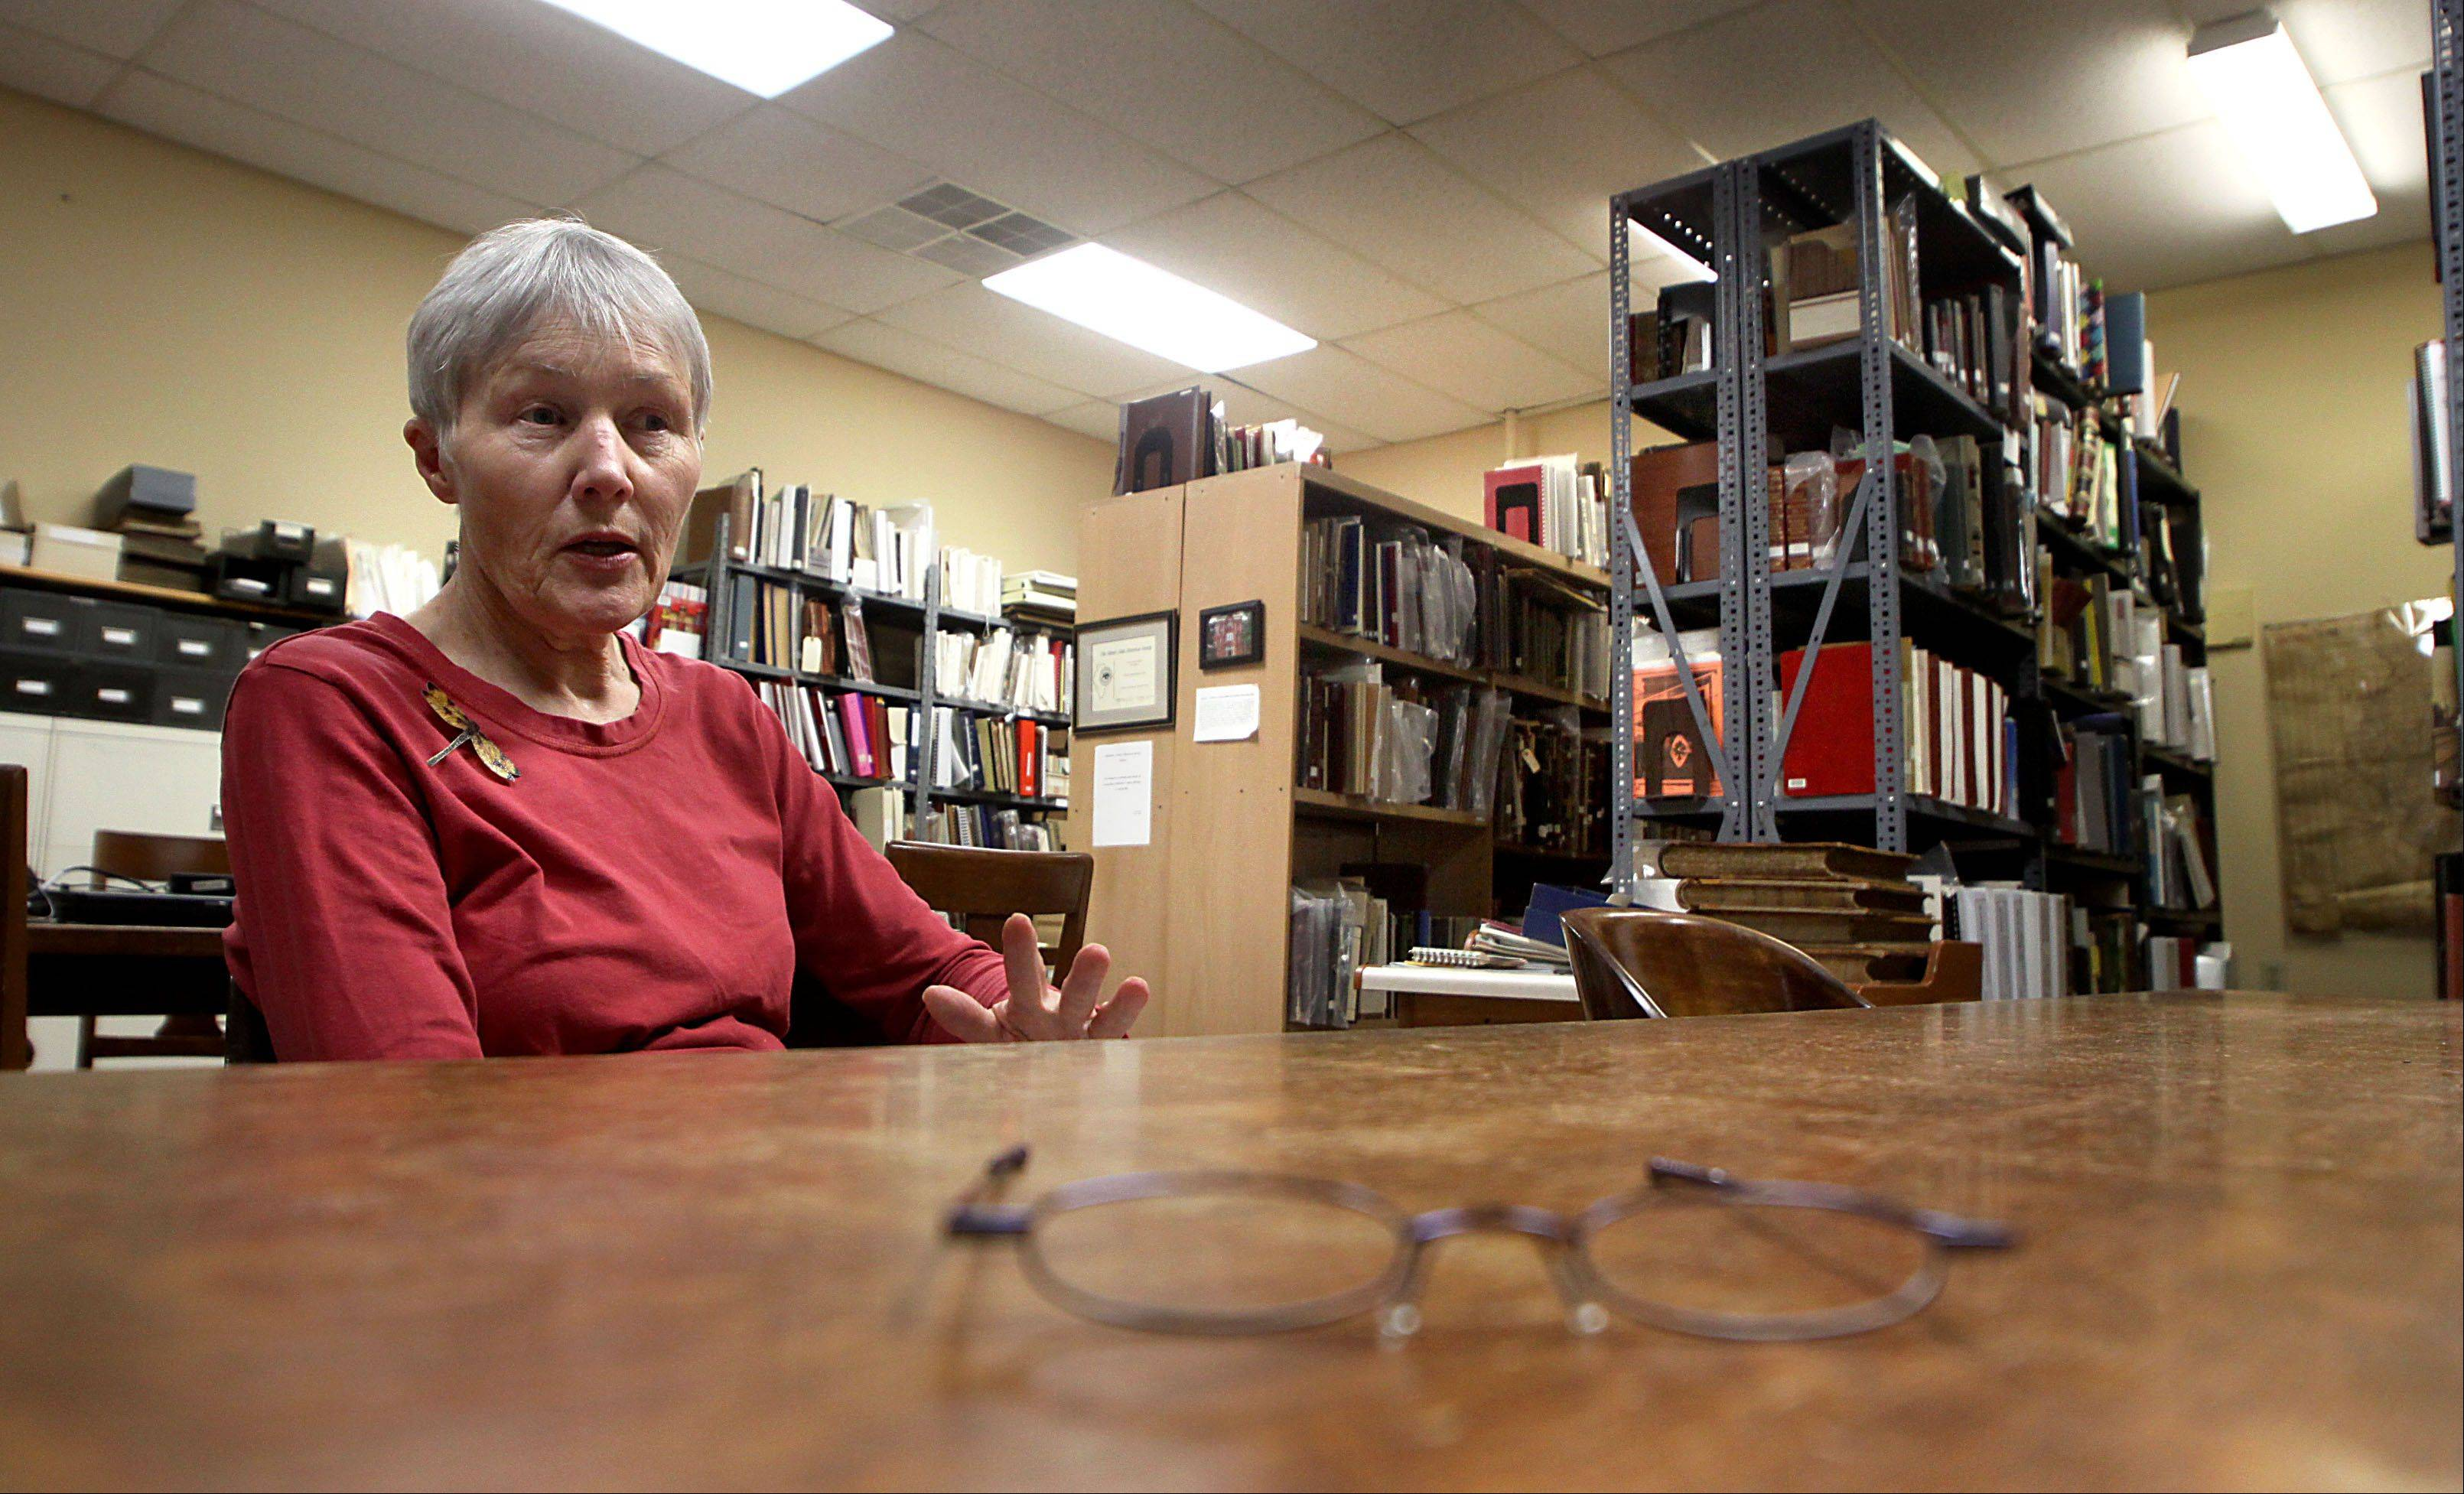 Nancy Fike is retiring from her position as administrator at the McHenry County Historical Society in Union at the end of the month. Here, Fike recalls moments over the years spent researching in the society library.